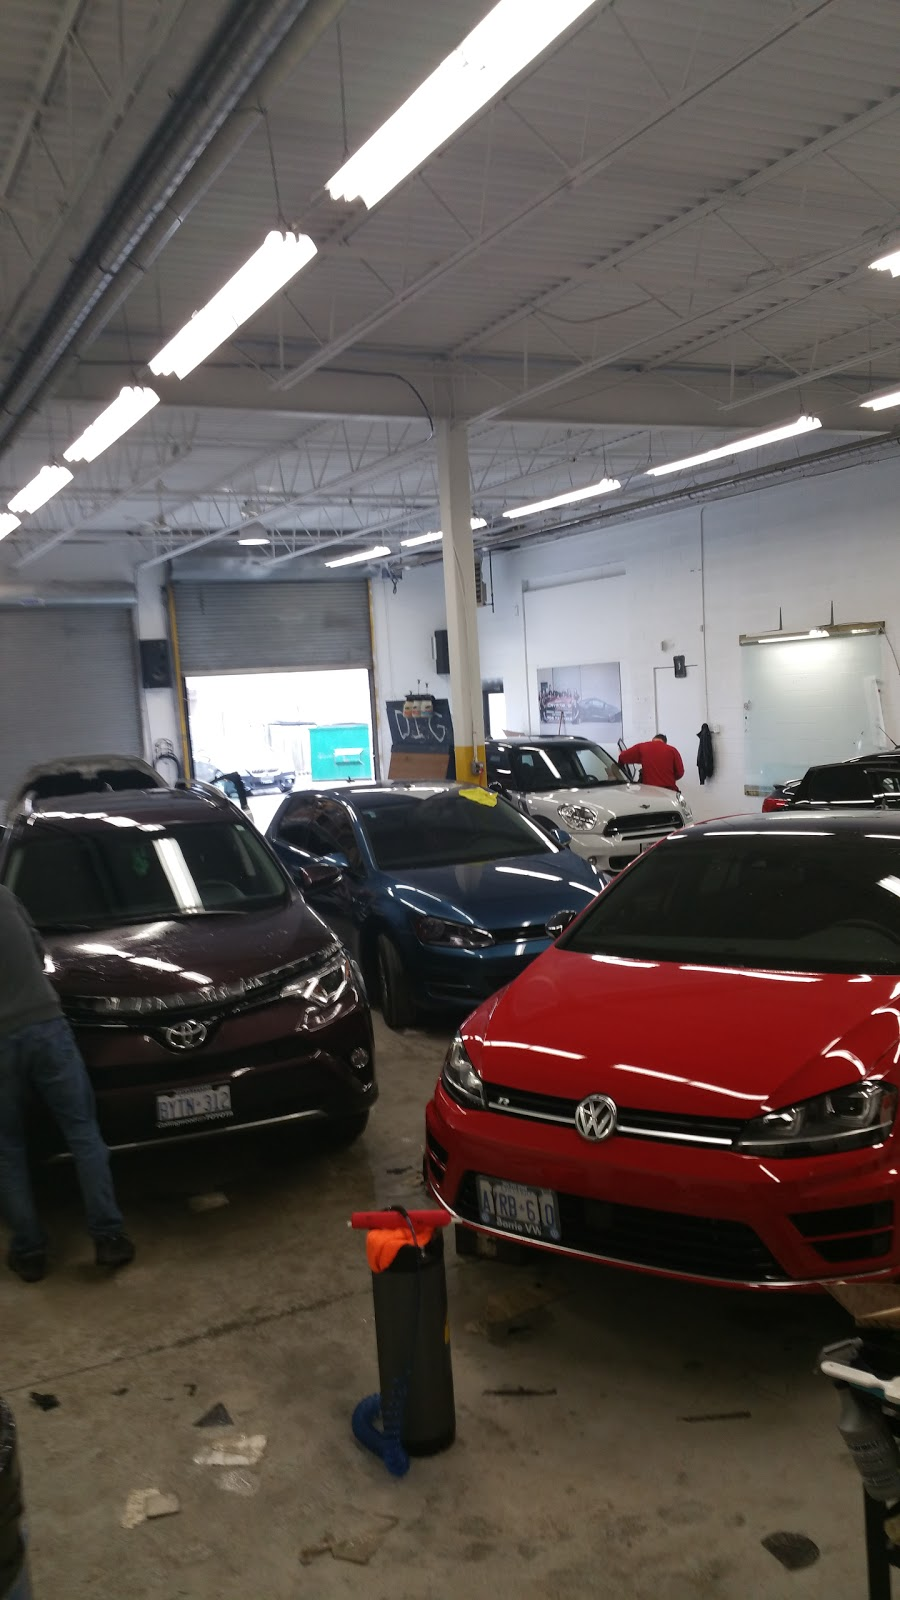 Crystals Glass Tinting Inc | car repair | 438 Dunlop St W, Barrie, ON L4N 1C2, Canada | 7057210368 OR +1 705-721-0368